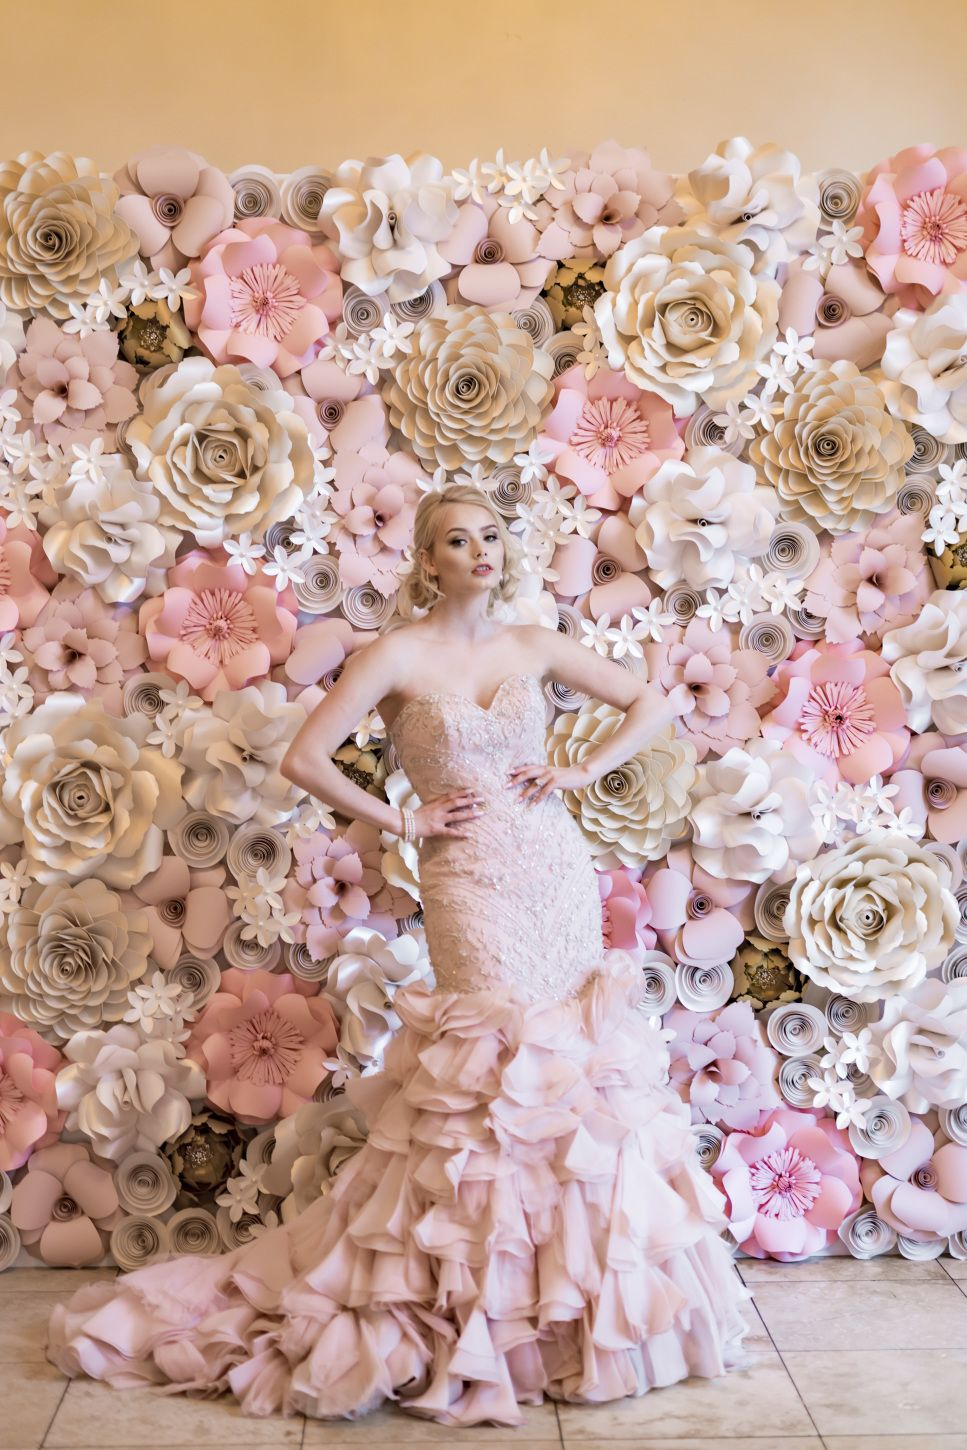 Paper Flower Wall Rental Pictures Paper Flower Wall Rentals And Paper Flower Arch Rental Flower Wall Wedding Paper Flower Wall Wedding Flower Backdrop Wedding